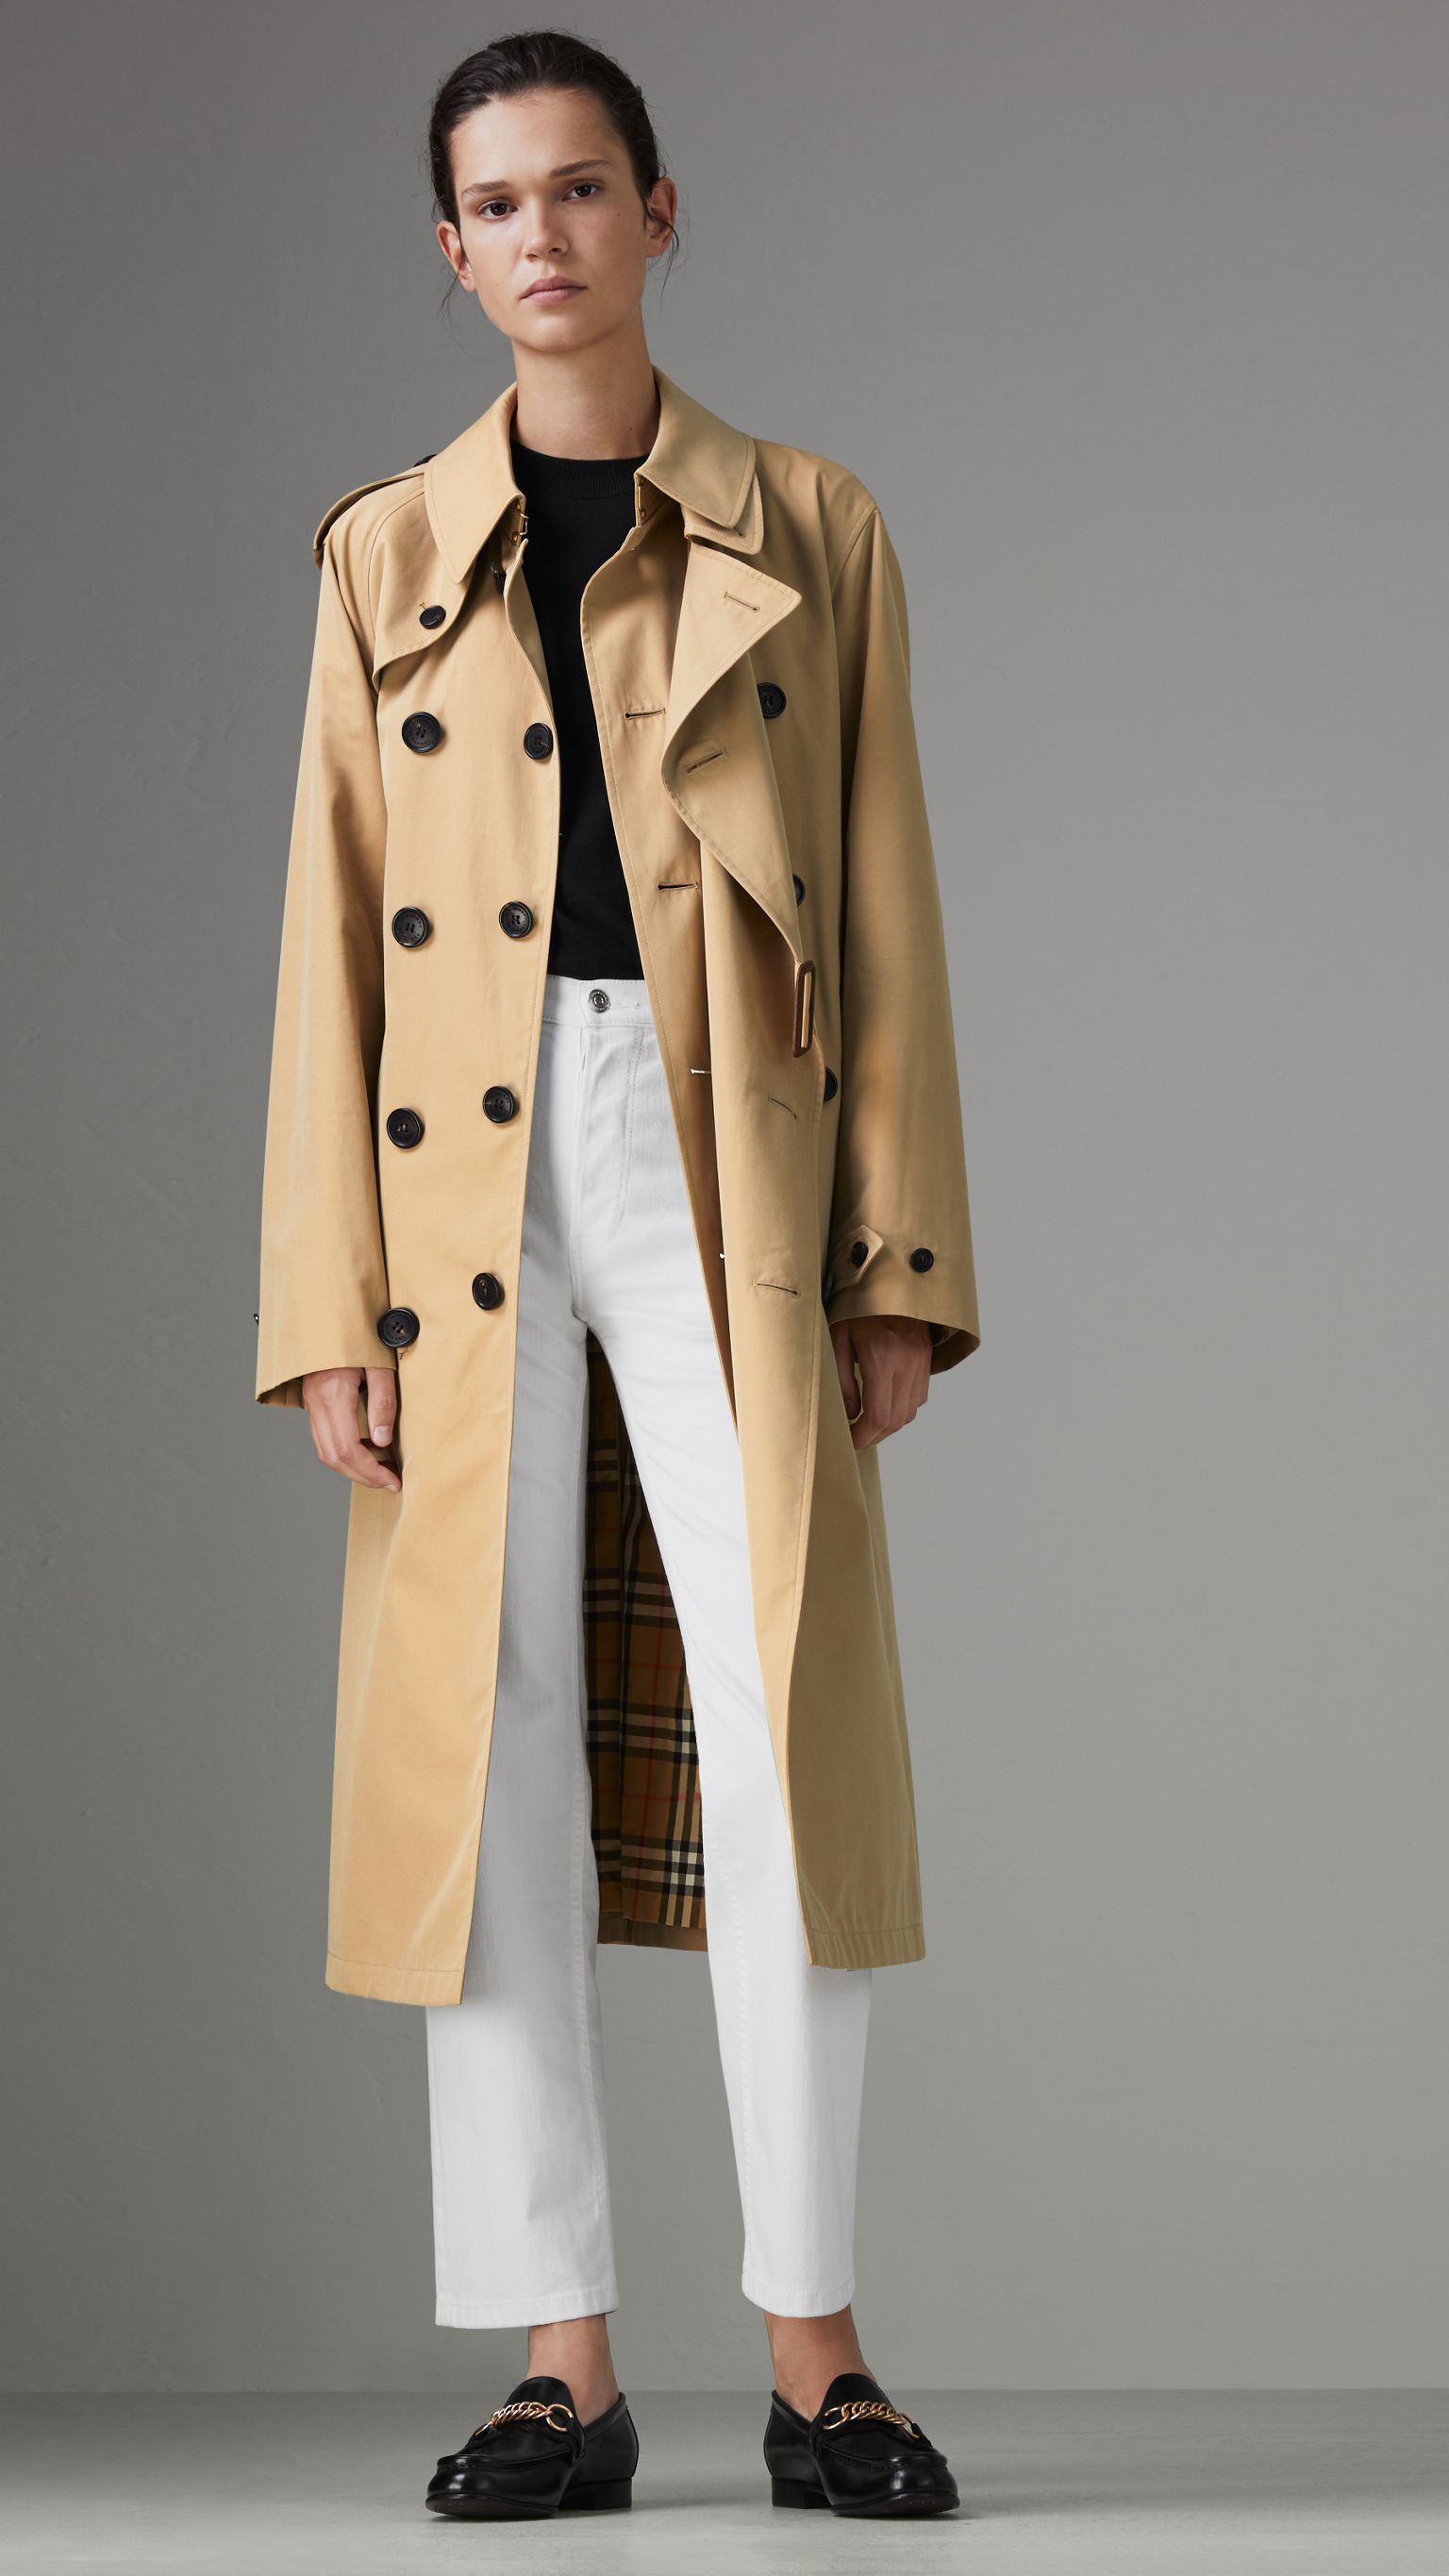 Trench Coats For Women Burberry Trench Coats Women Coats For Women Trench Coat